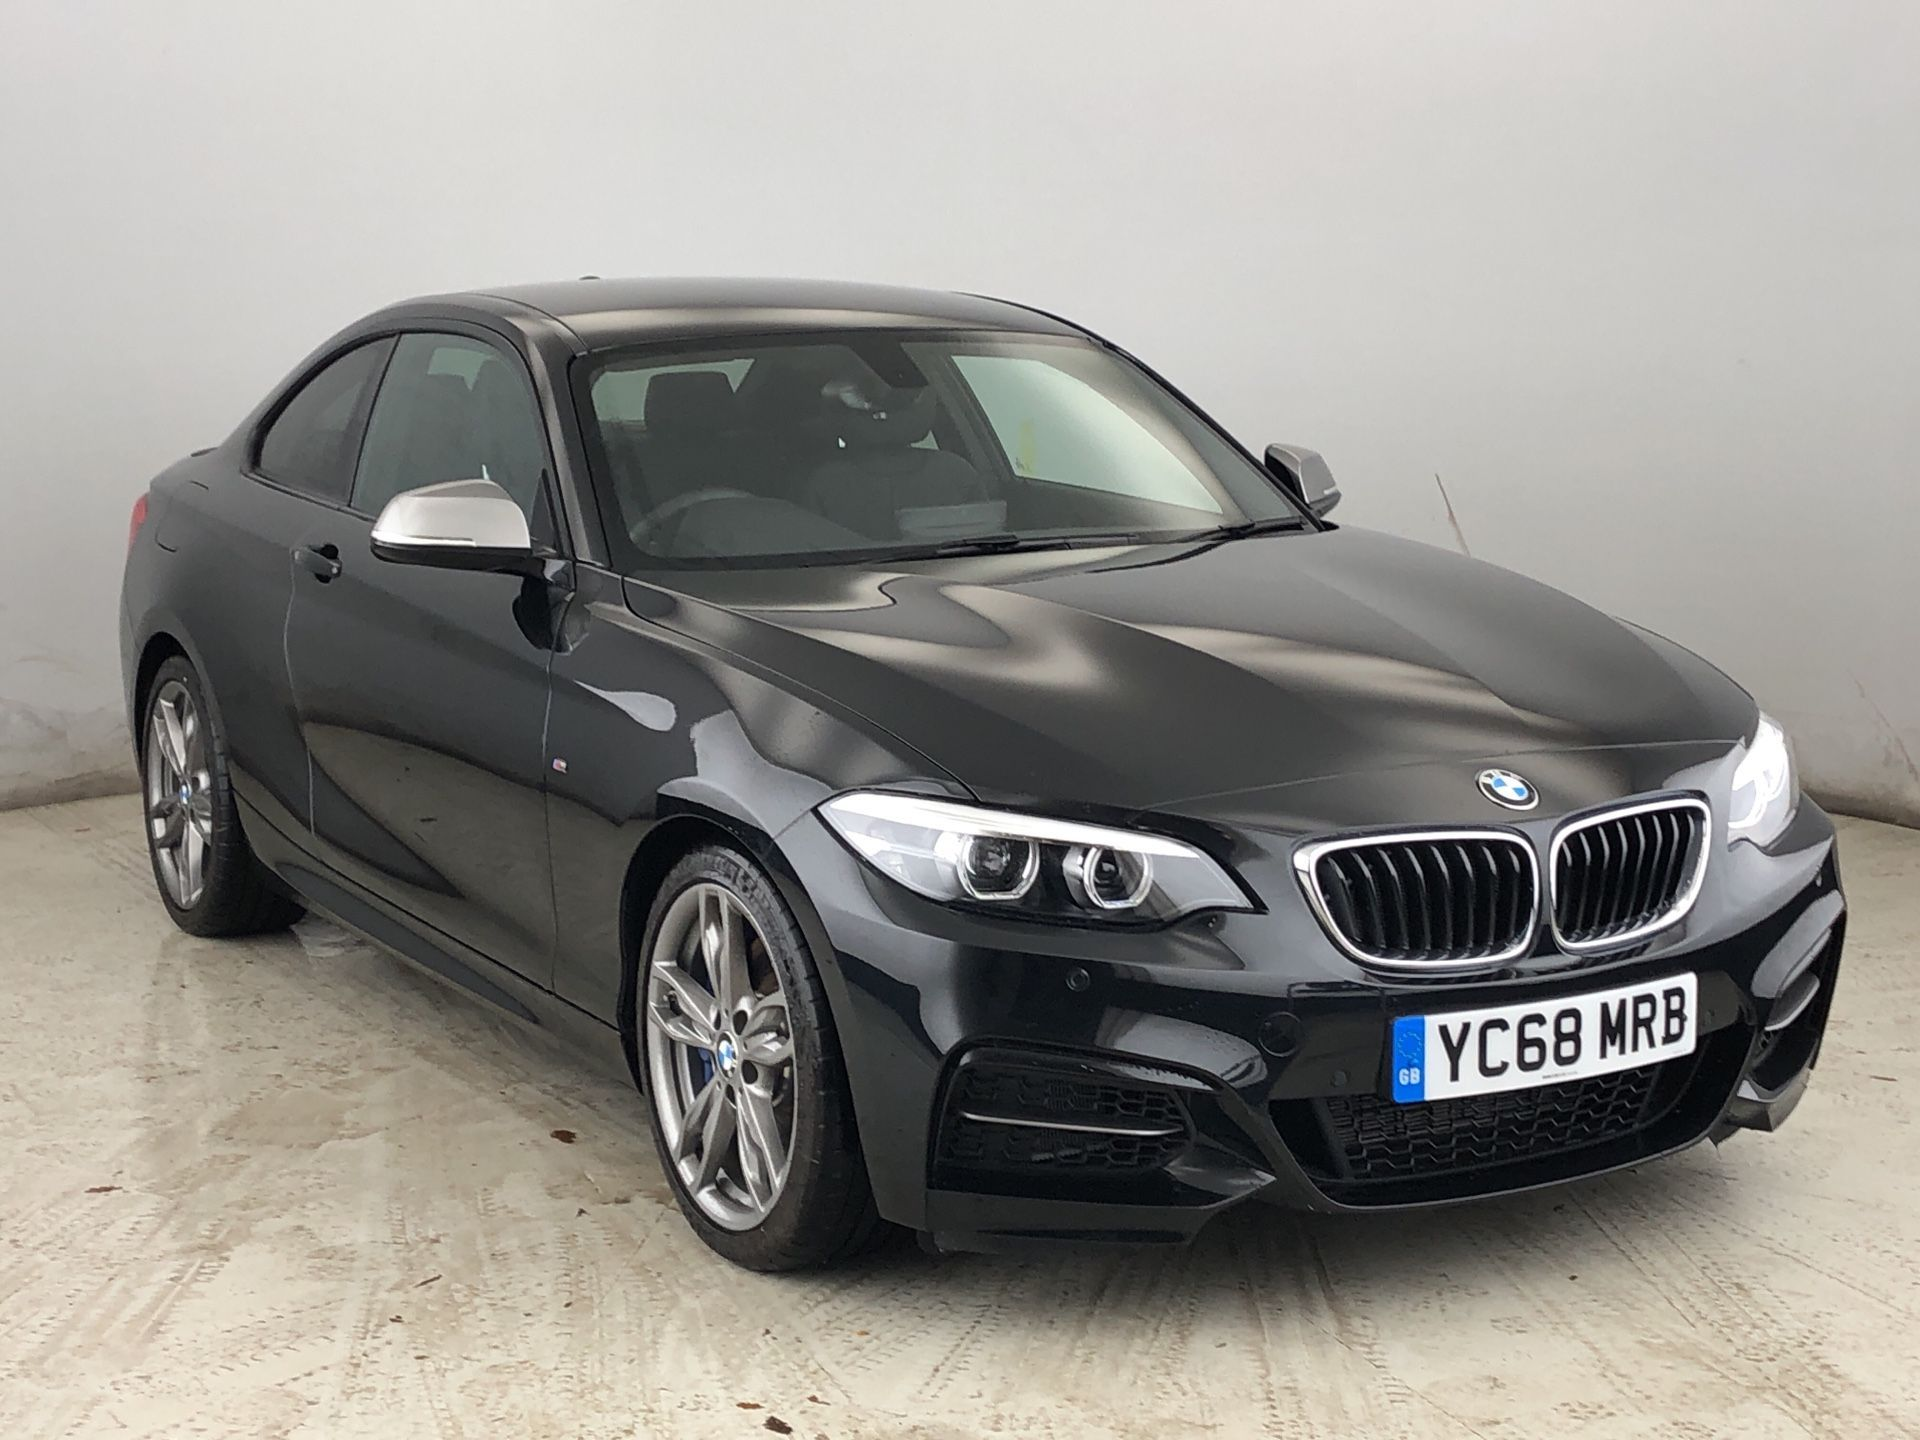 BMW 2 Series M240i Coupe 3.0 2dr